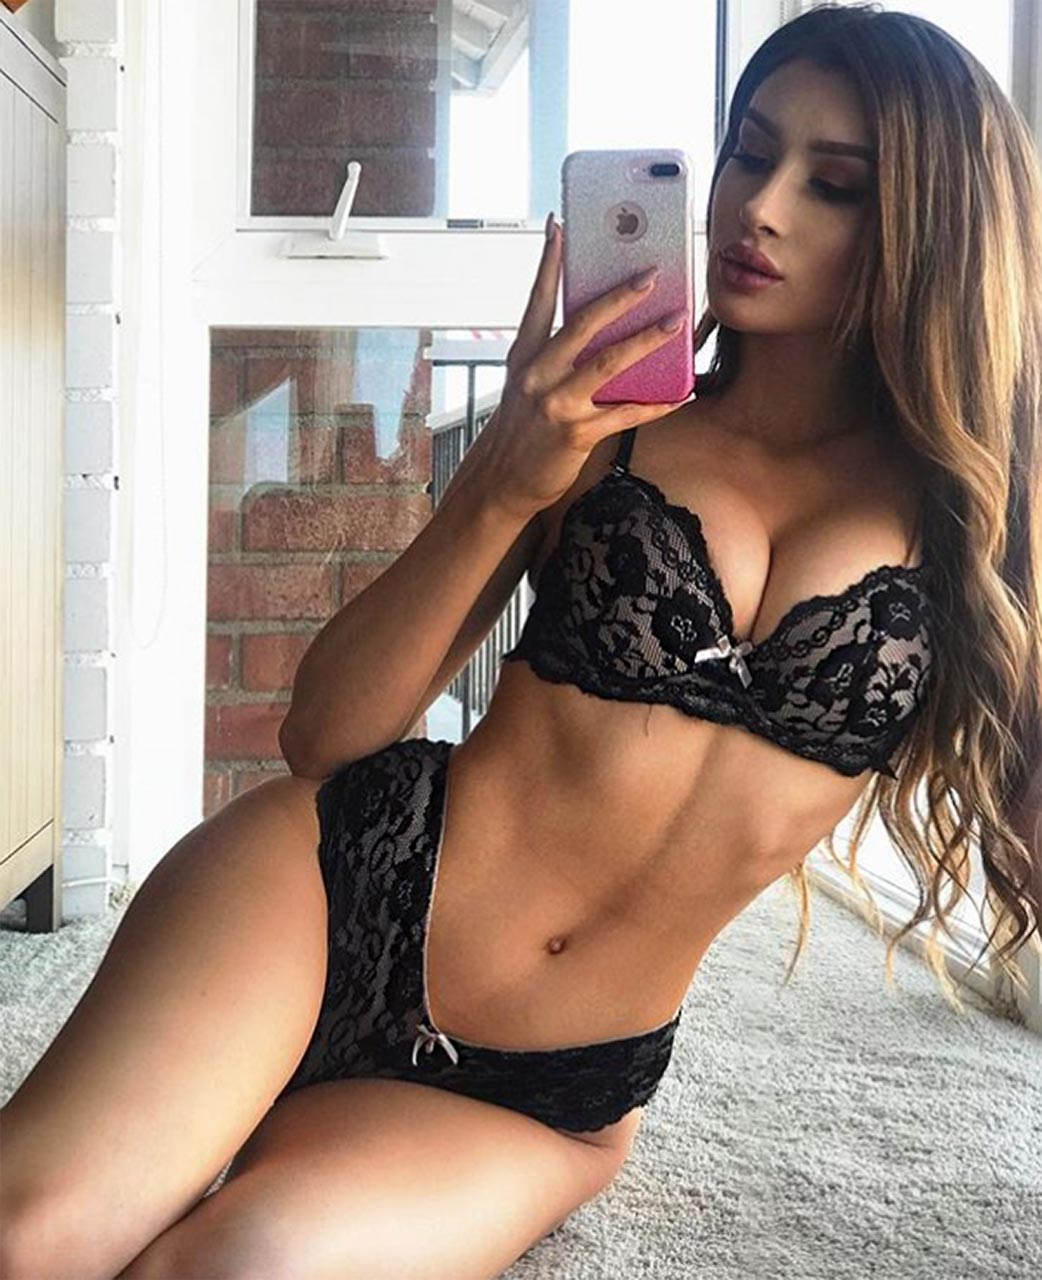 Molly Eskam Nude Leaked Videos and Naked Pics! 92